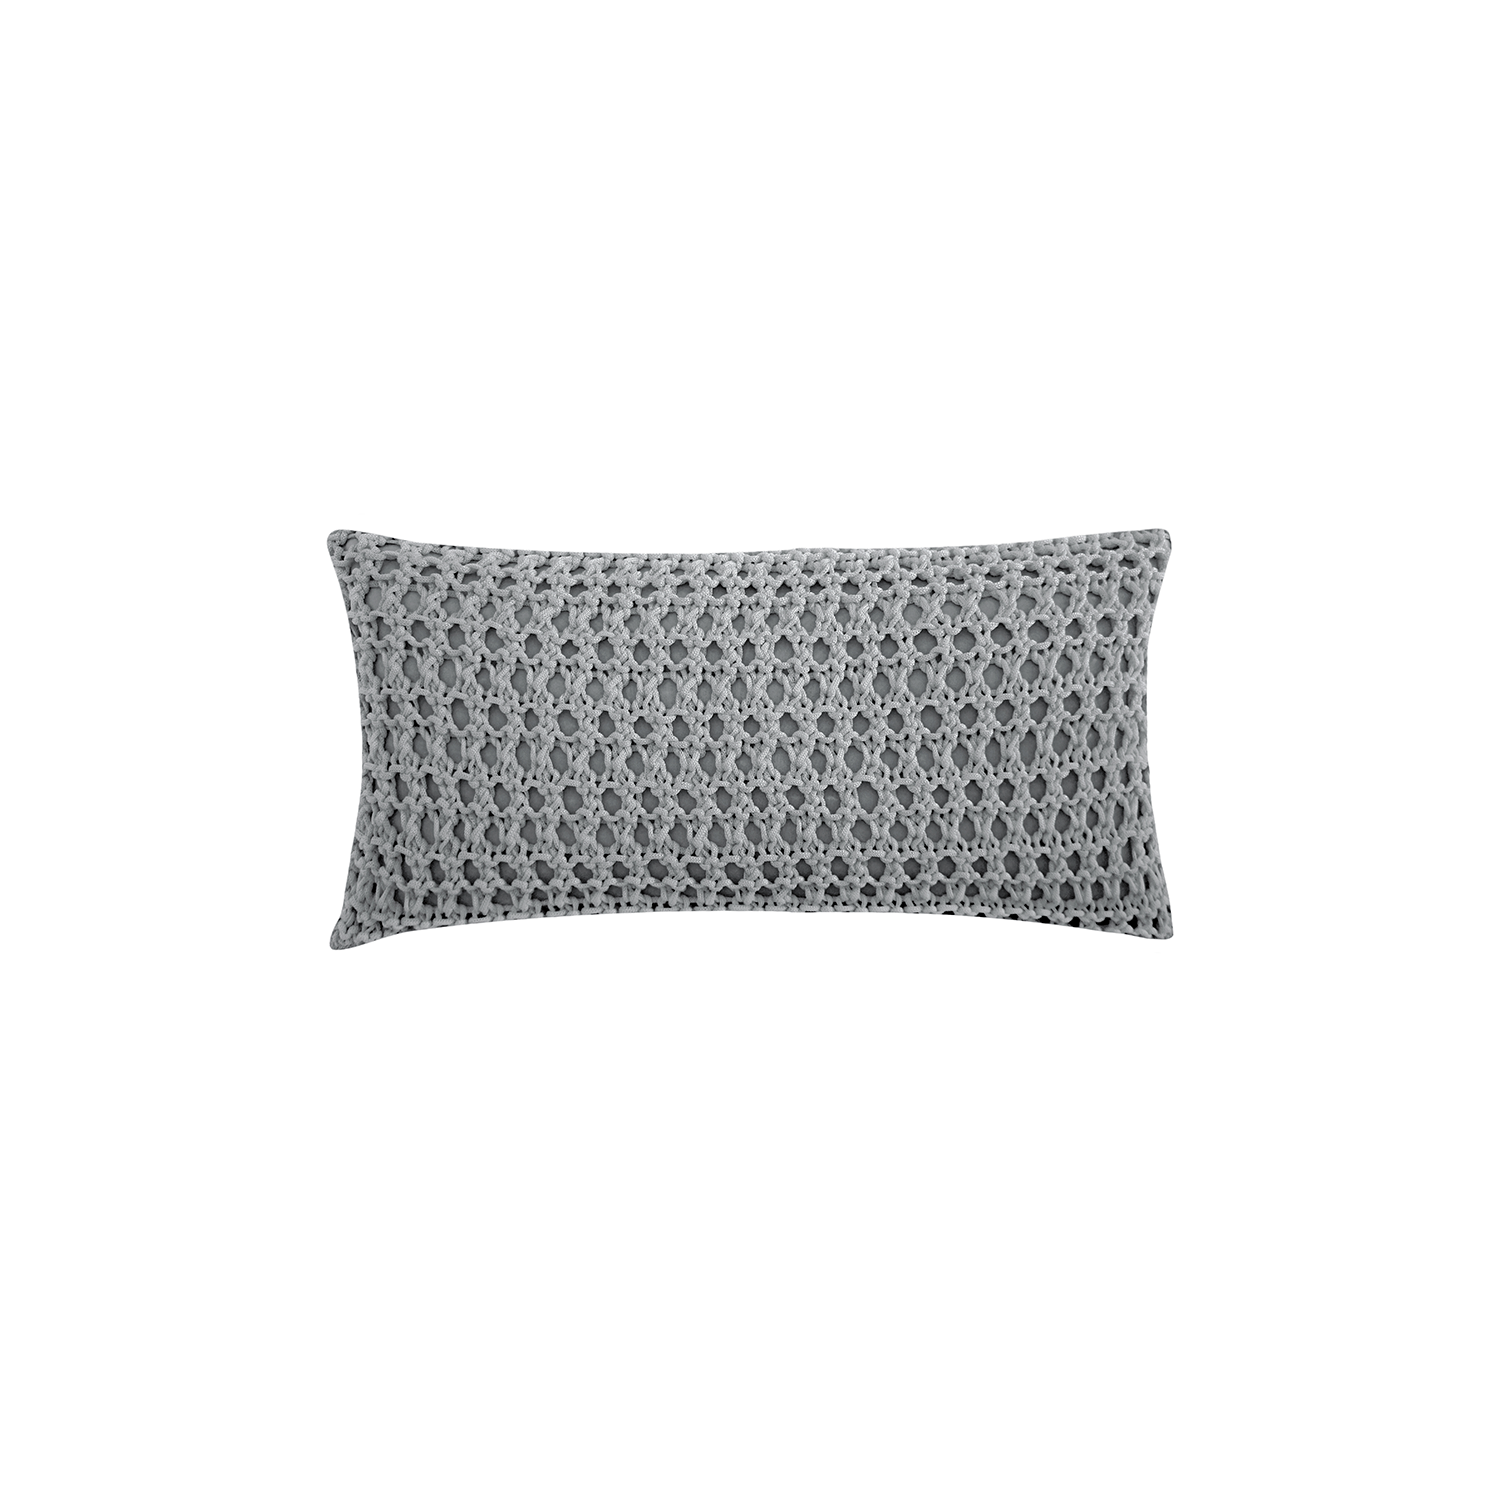 Pescador Neo Cushion Small - The Pescador Neo Cushion is carefully knitted within a trained community of women that found in their craft a way to provide for their families. The outdoor collection is made with synthetic fibres, resistant to weather exposure. The use of neoprene brings comfort and technology to the cushions.  The front panel is in neoprene combined with hand woven nautical cord, made in Brazil.  The inner cushion is in Hollow Fibre, made in the UK.  Please enquire for more information and see colour chart for reference.  | Matter of Stuff